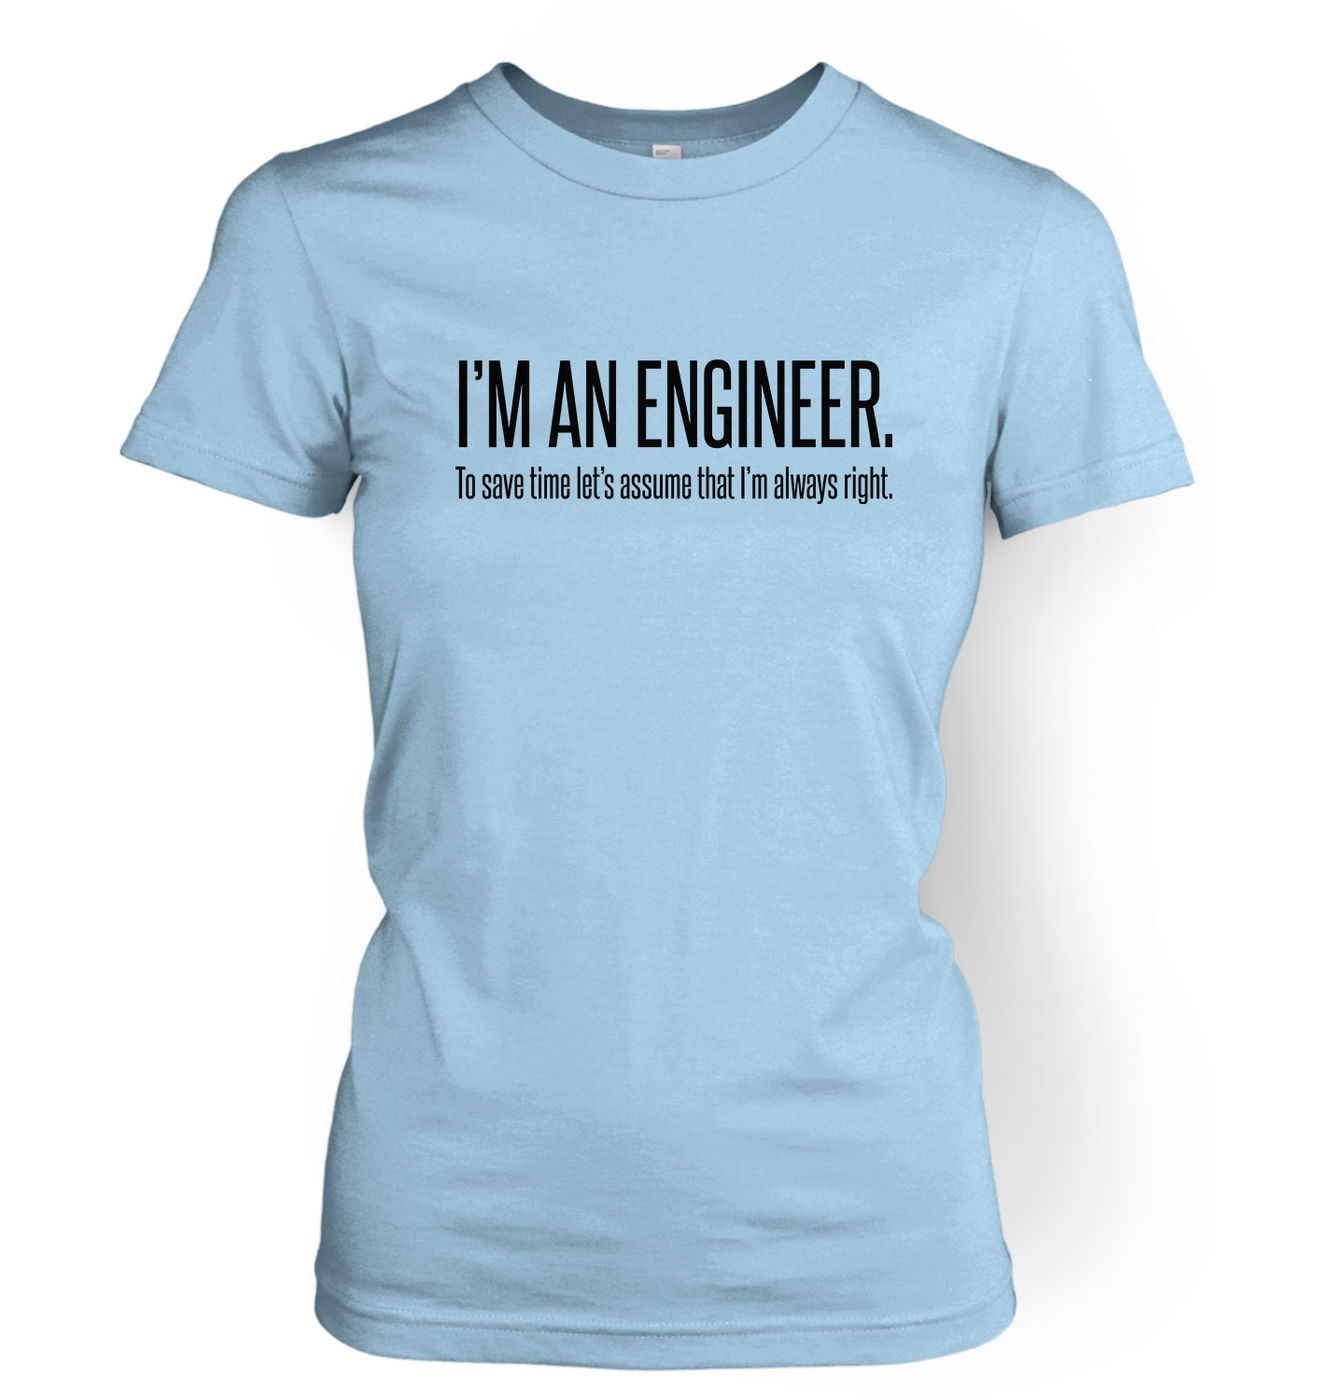 Engineer Always Right women's t-shirt by Something Geeky